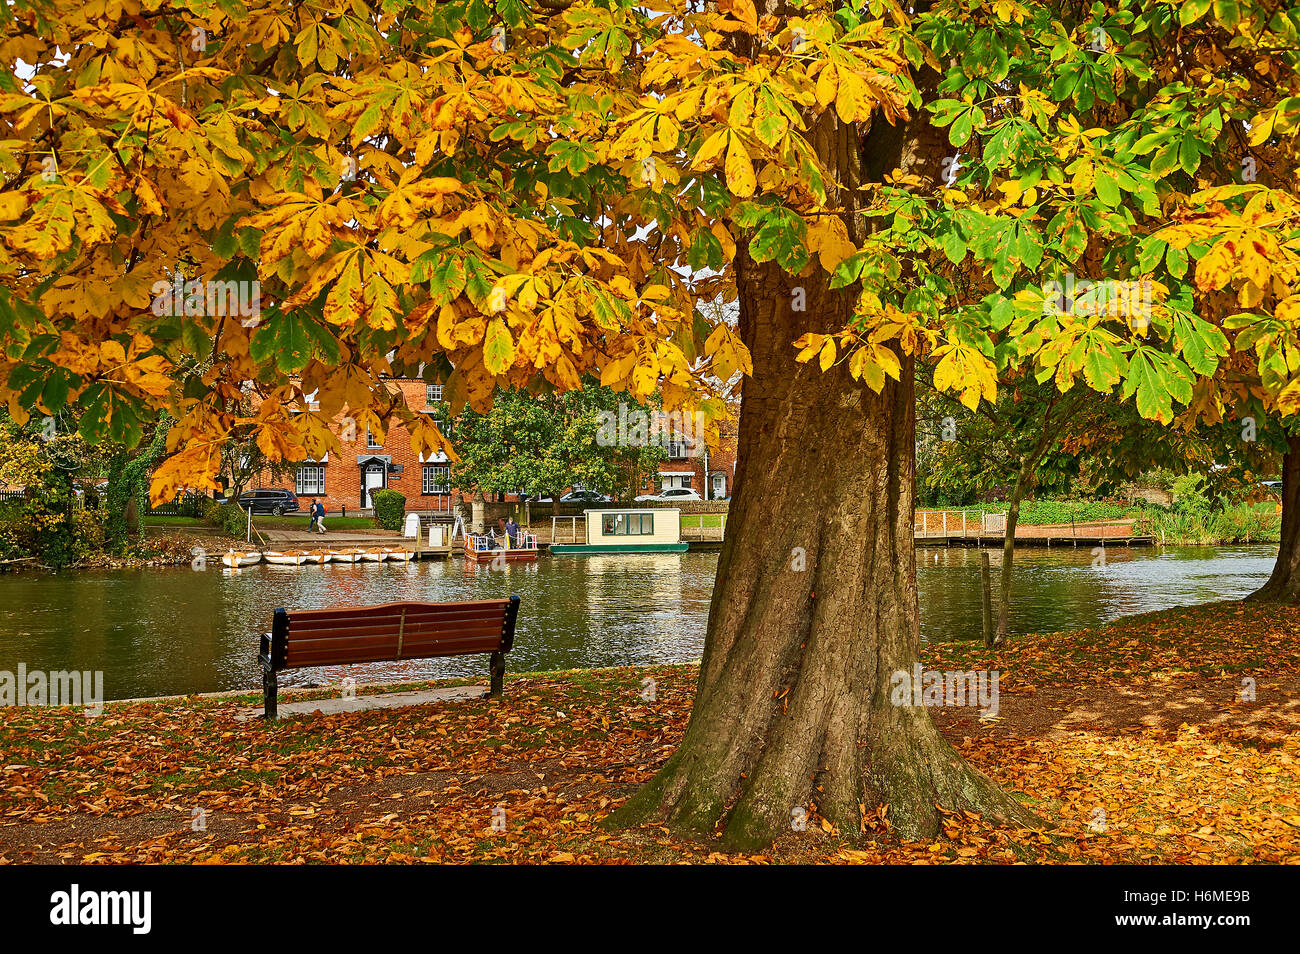 Trees in autumnal fall season colouring on the recreation ground in Stratford upon Avon - Stock Image